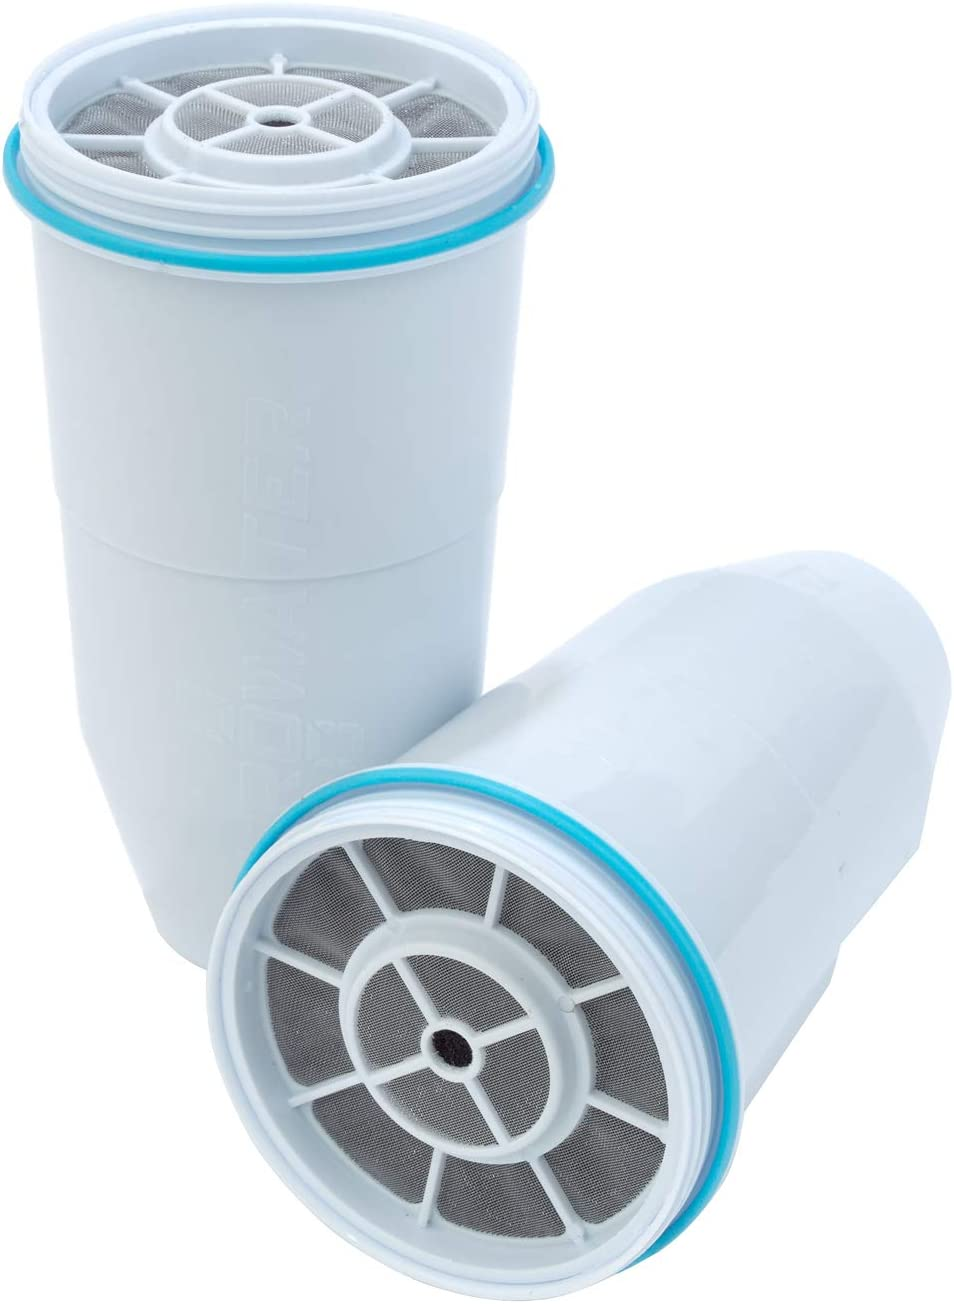 ZeroWater 5-Stage Replacement Filter, 2-Pack, White: Replacement Undersink Water Filtration Filters: Kitchen & Dining